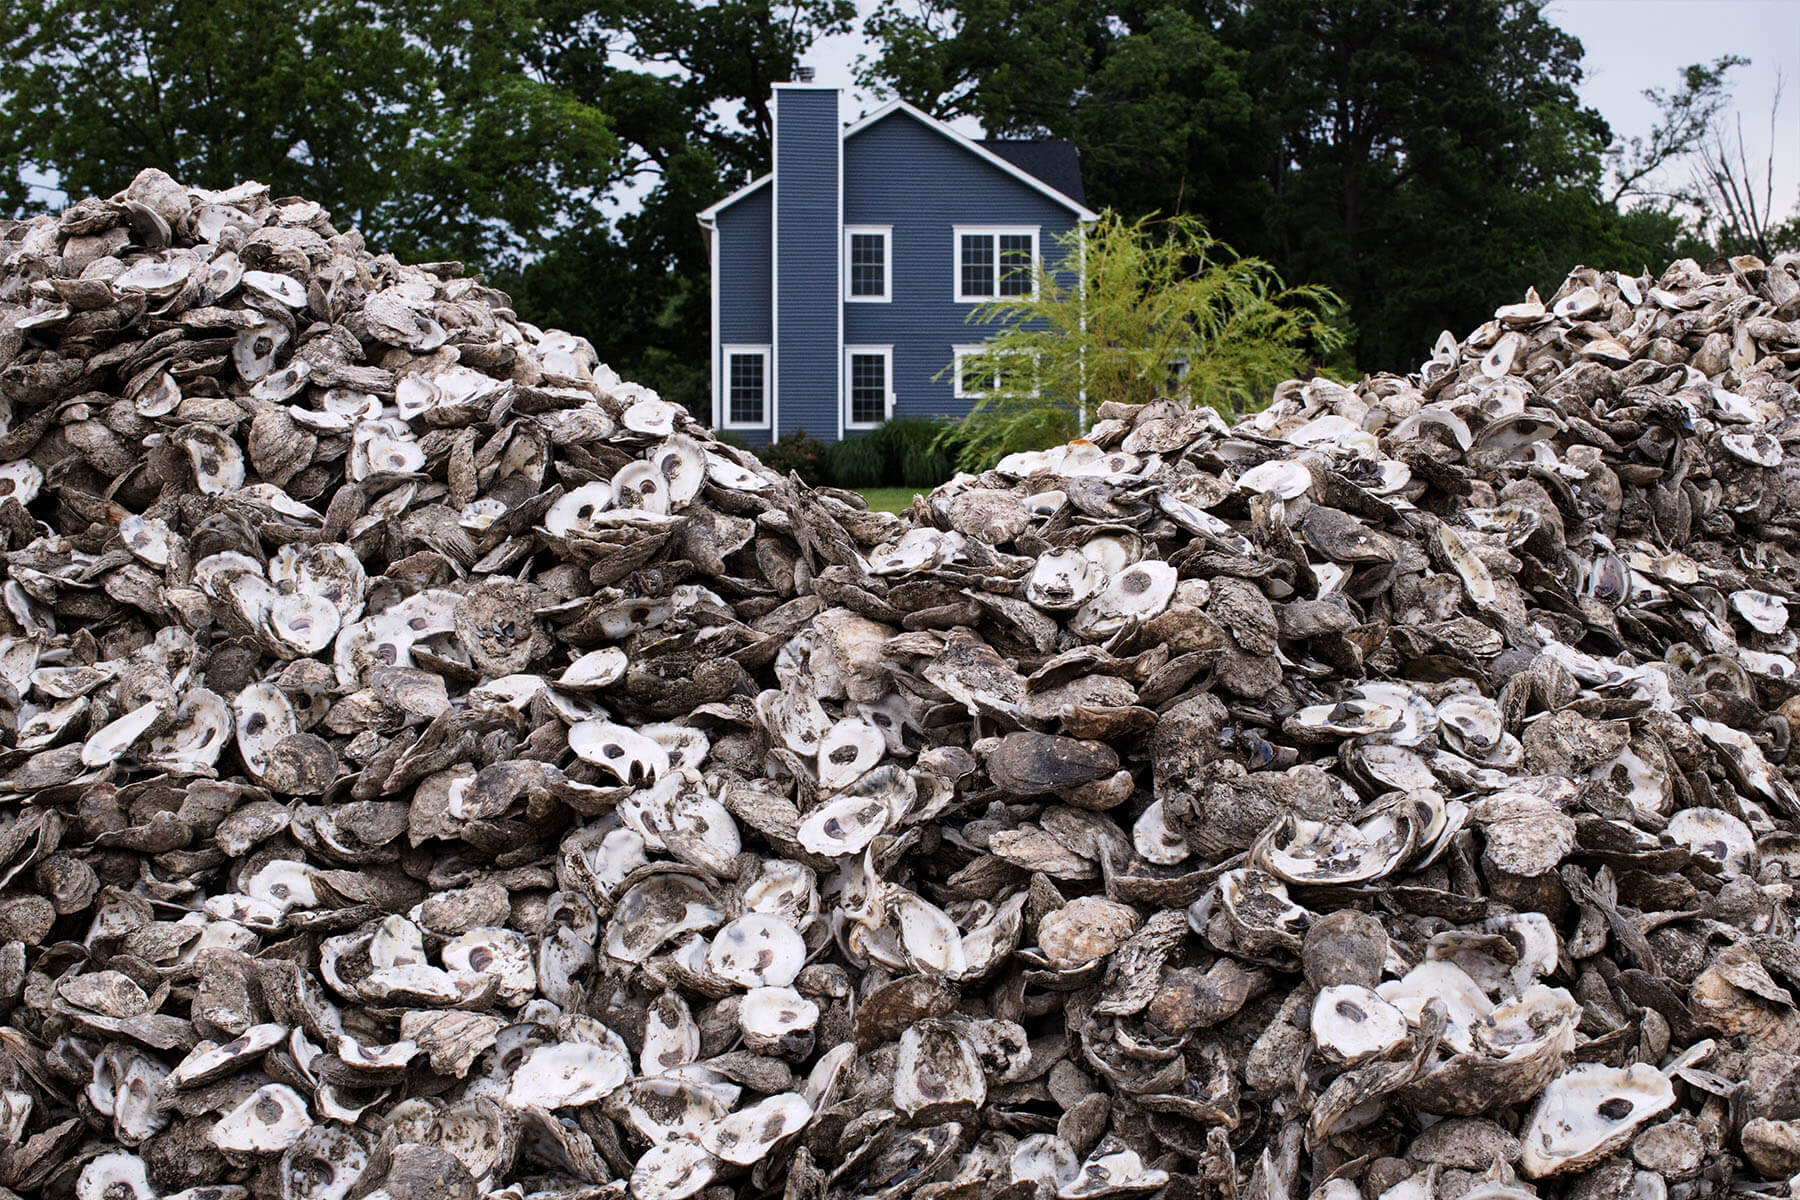 A pile of oysters with a house behind it.